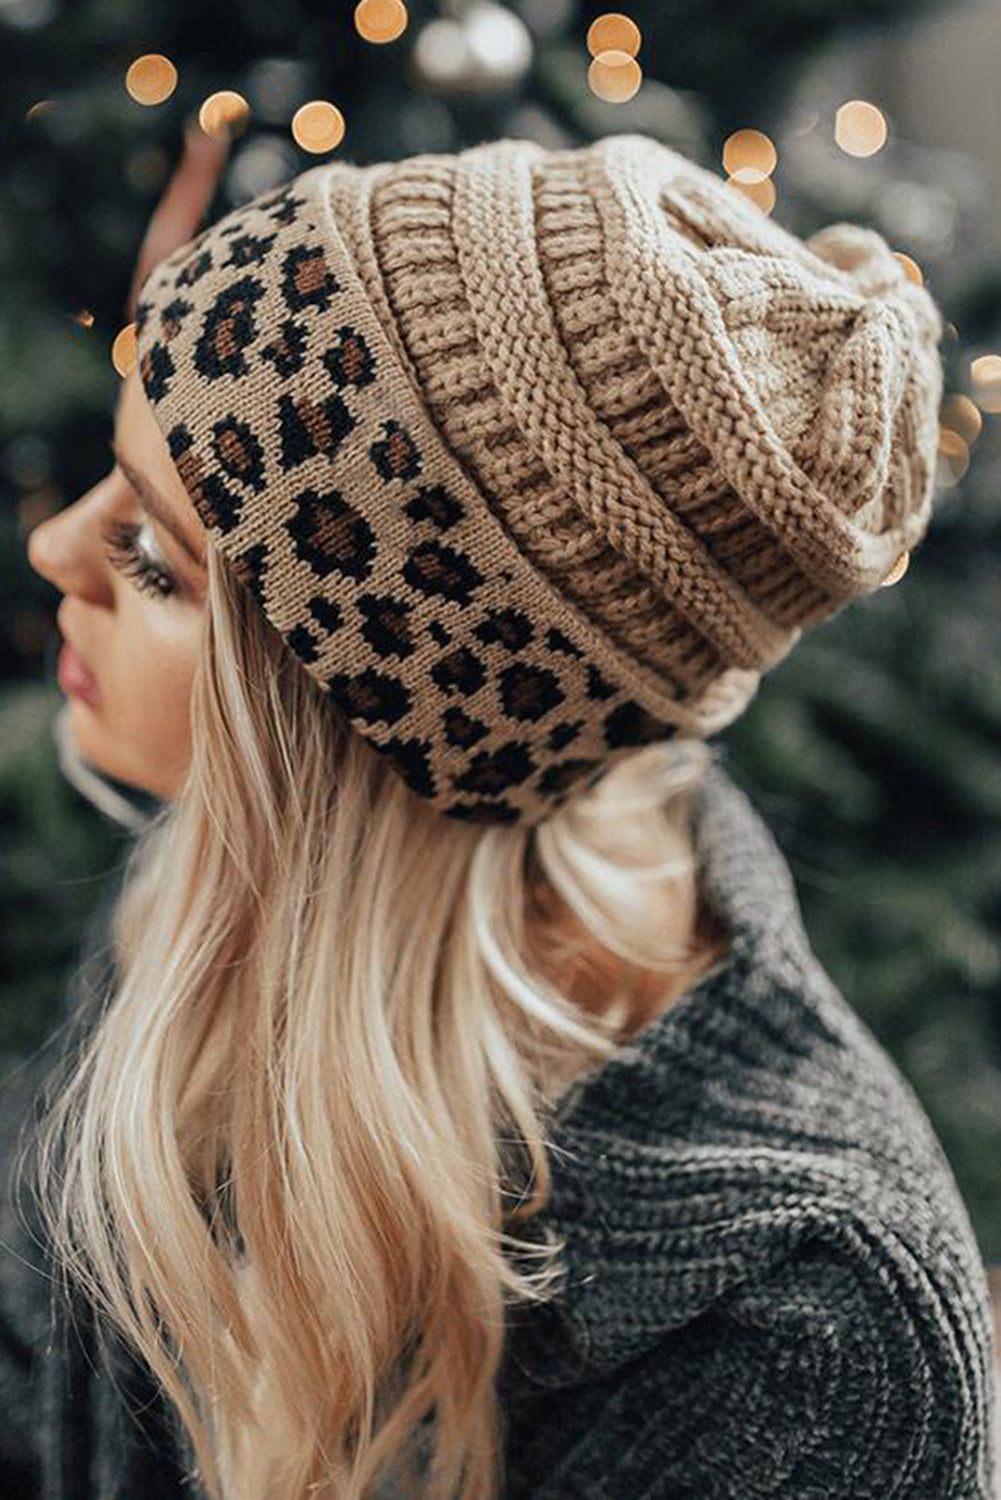 Apricot Knitted Leopard Beanie Hats & Caps Discount Designer Fashion Clothes Shoes Bags Women Men Kids Children Black Owned Business